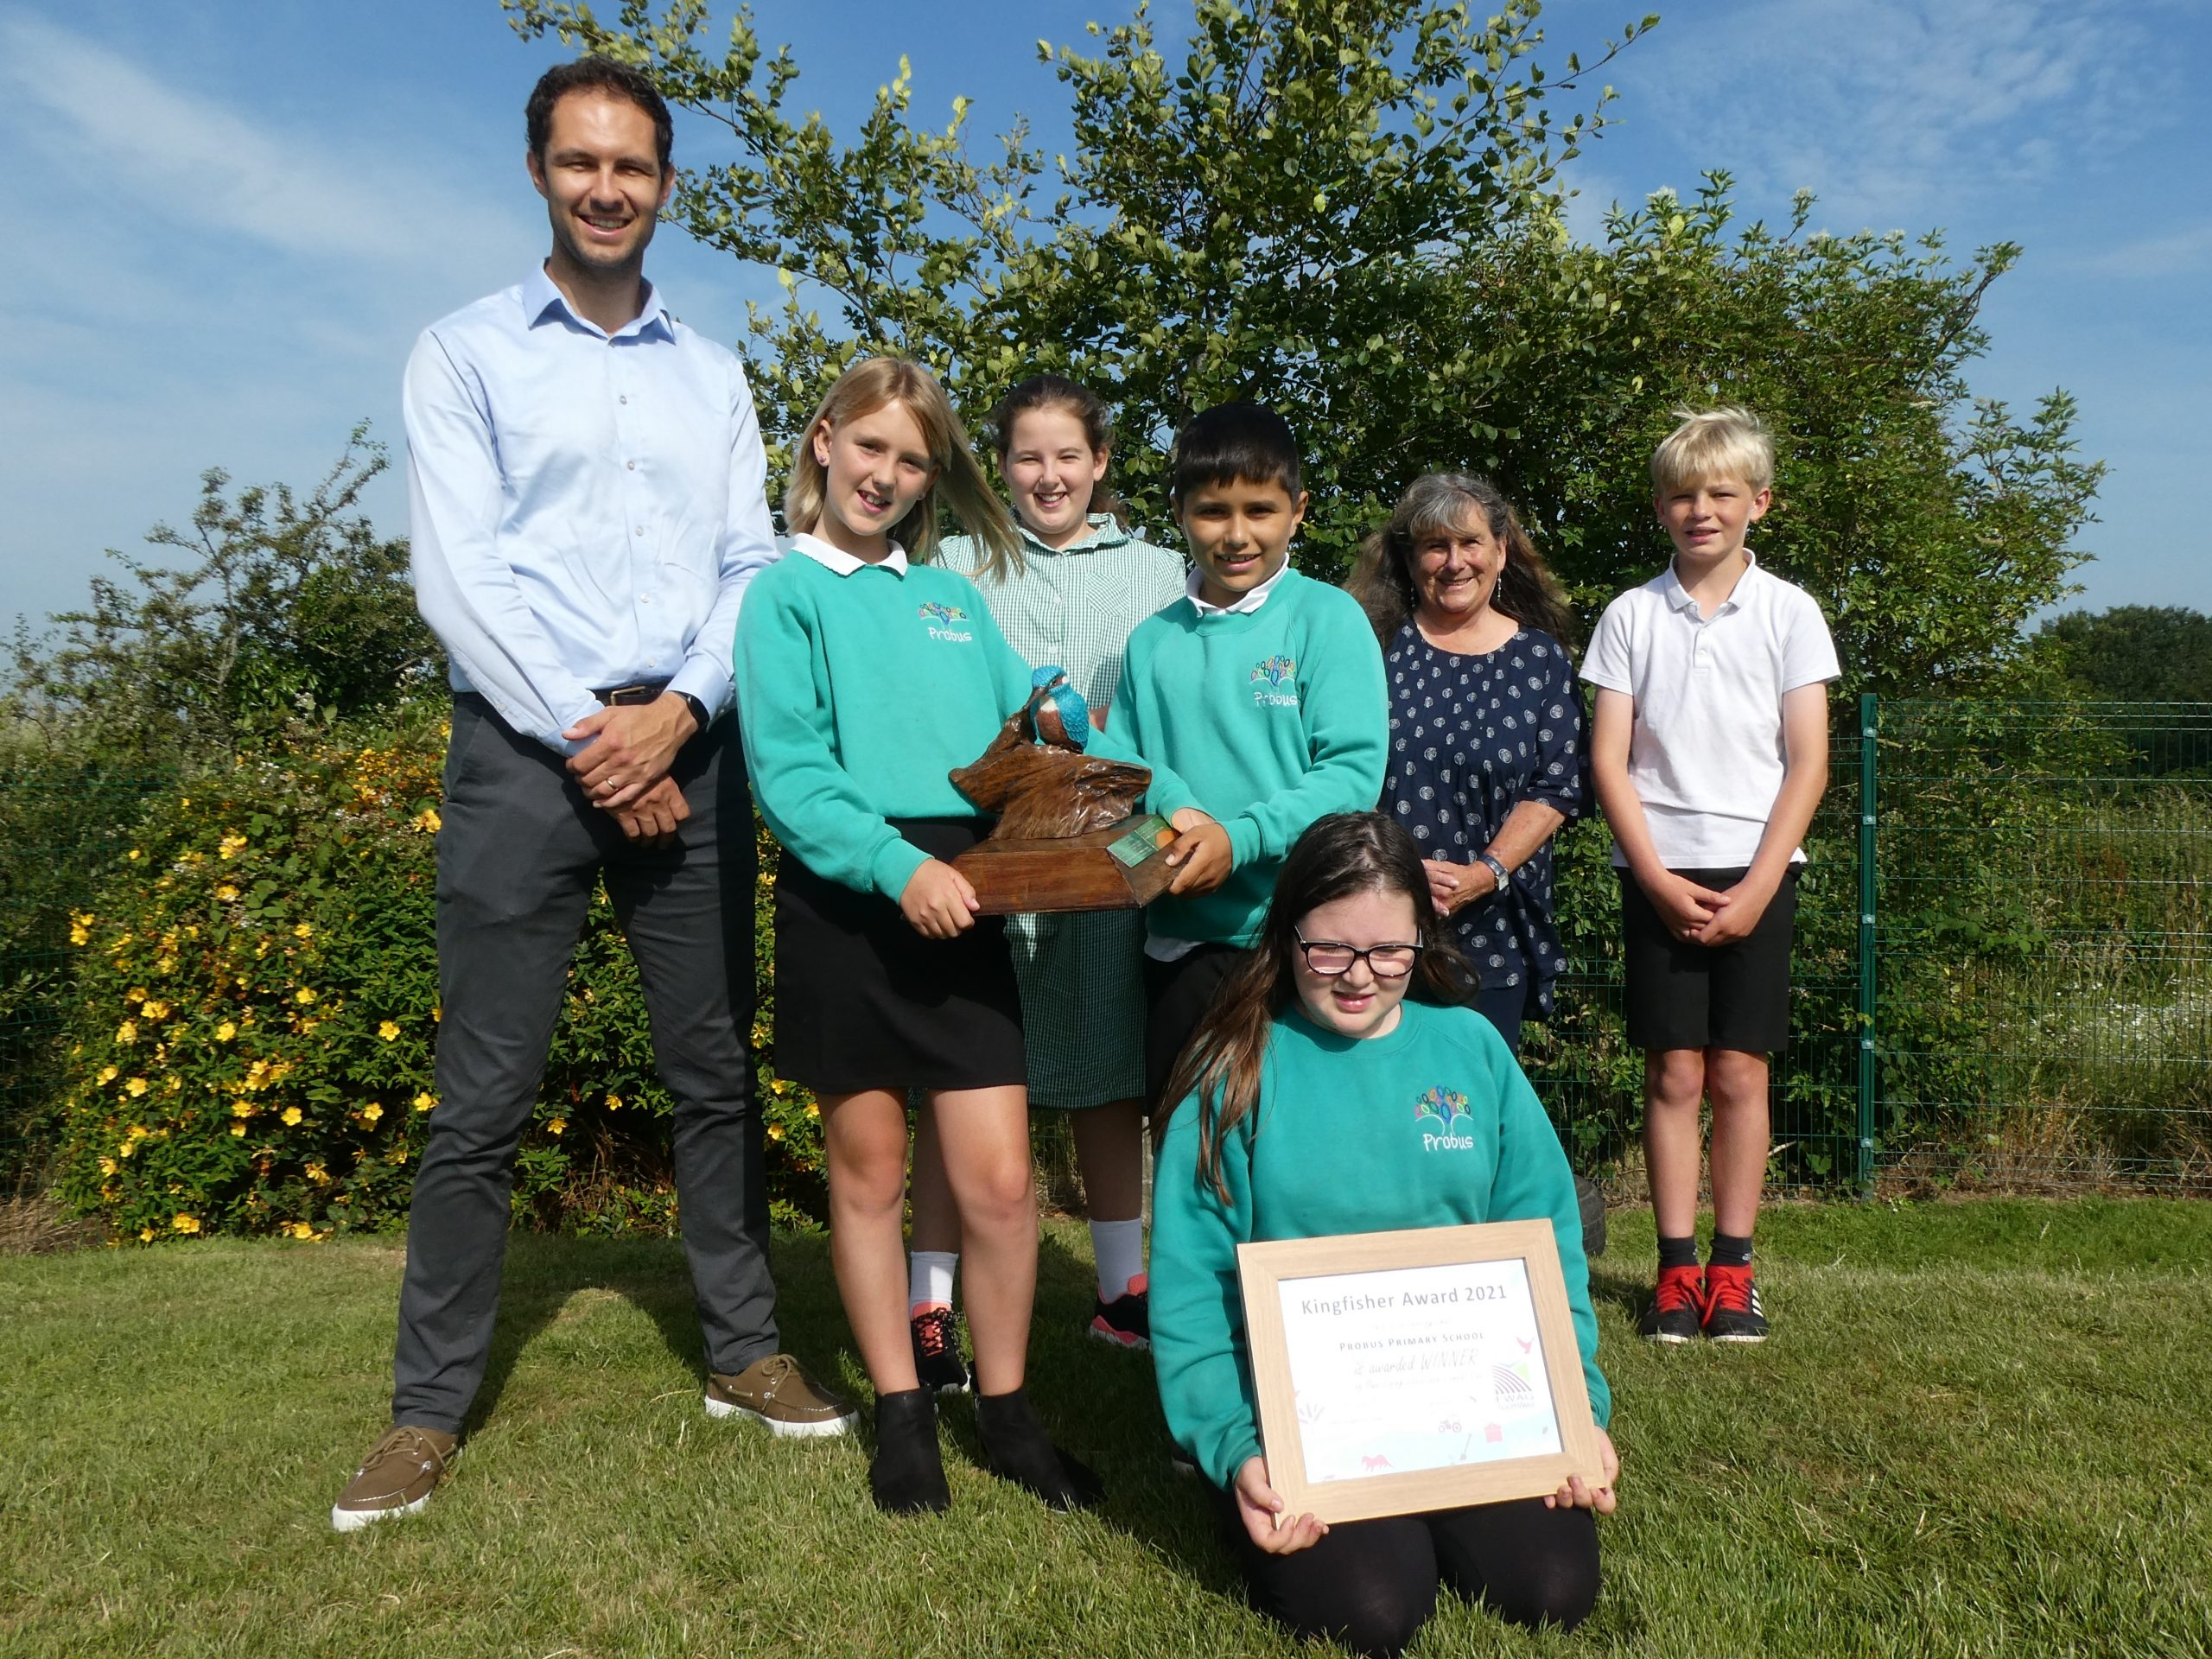 Teacher and school children from Probus Primary School with their Kingfisher Award